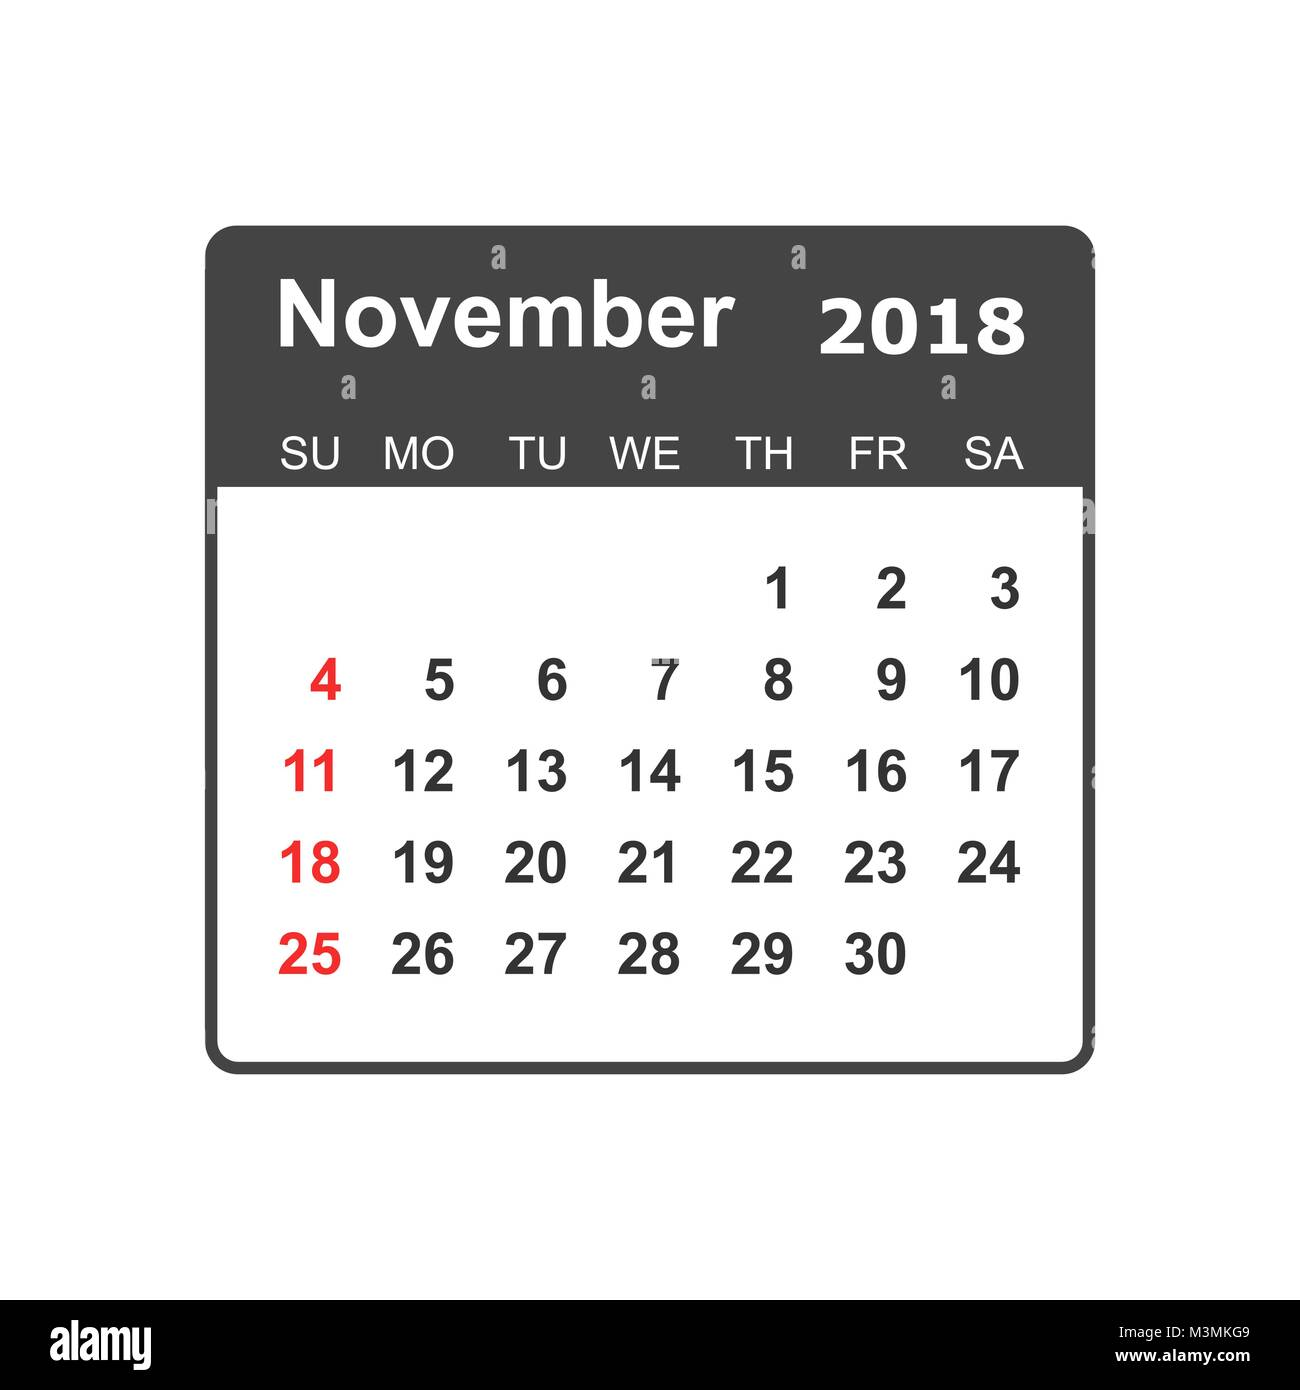 november 2018 calendar calendar planner design template week